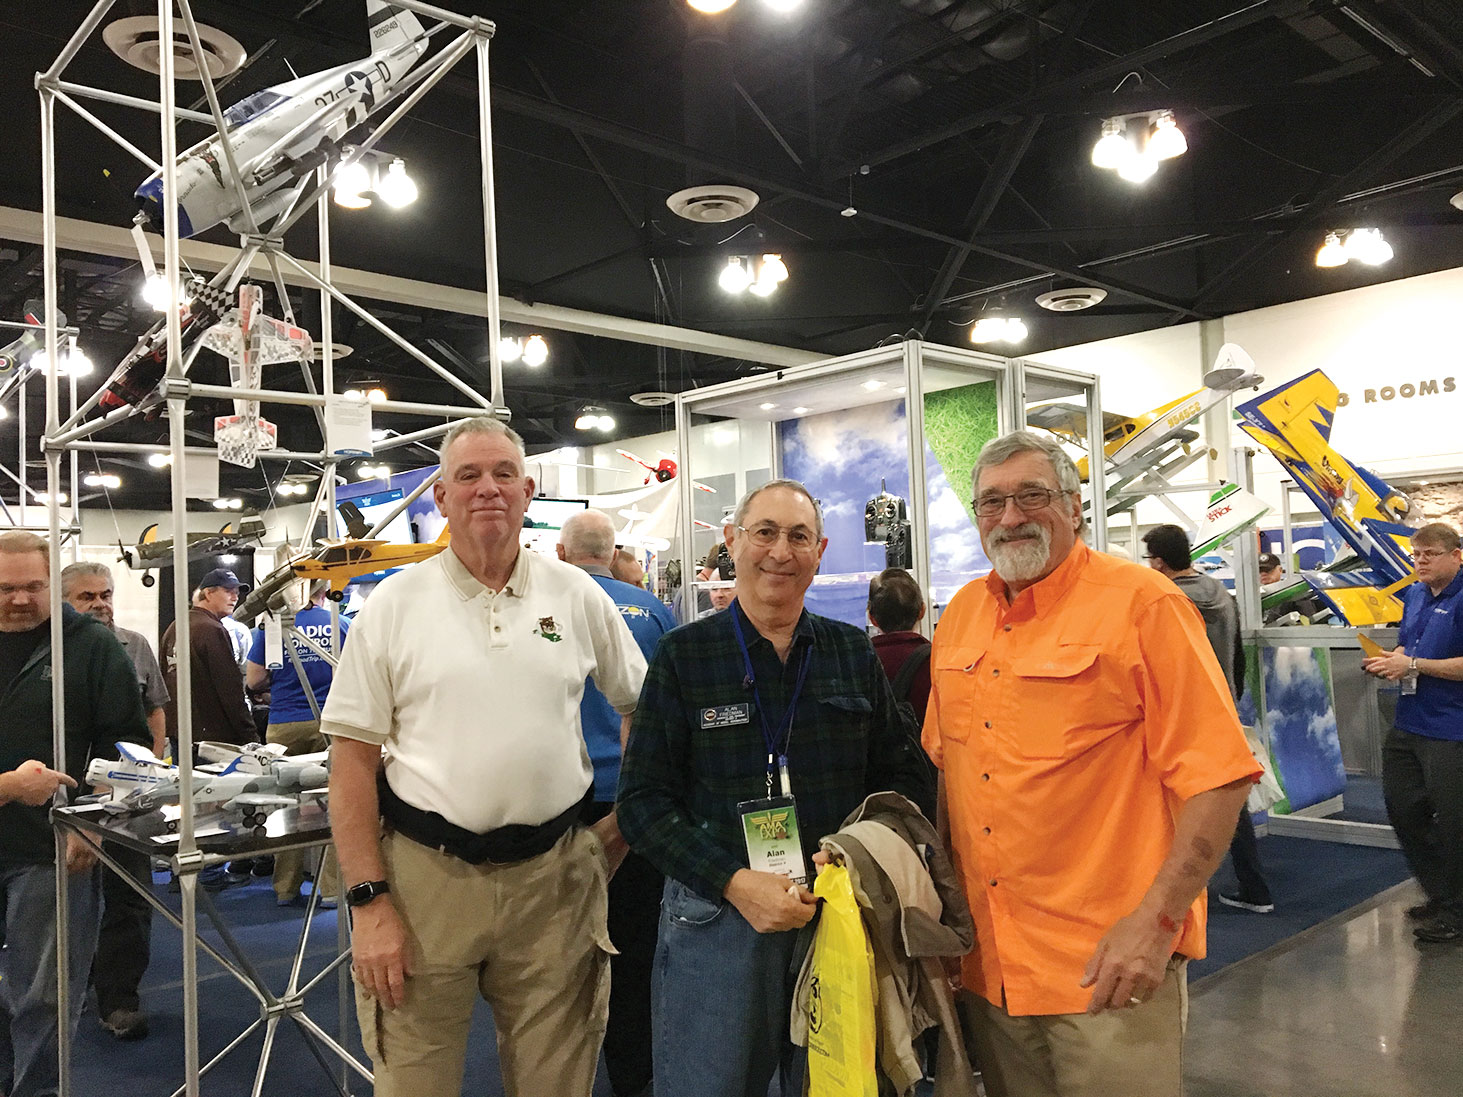 Alan Friedman, center, and another Casa Grande RC Flyers officer and member attending the AMA Expo in Ontario, California in January. The club had four board members and several general members attend.